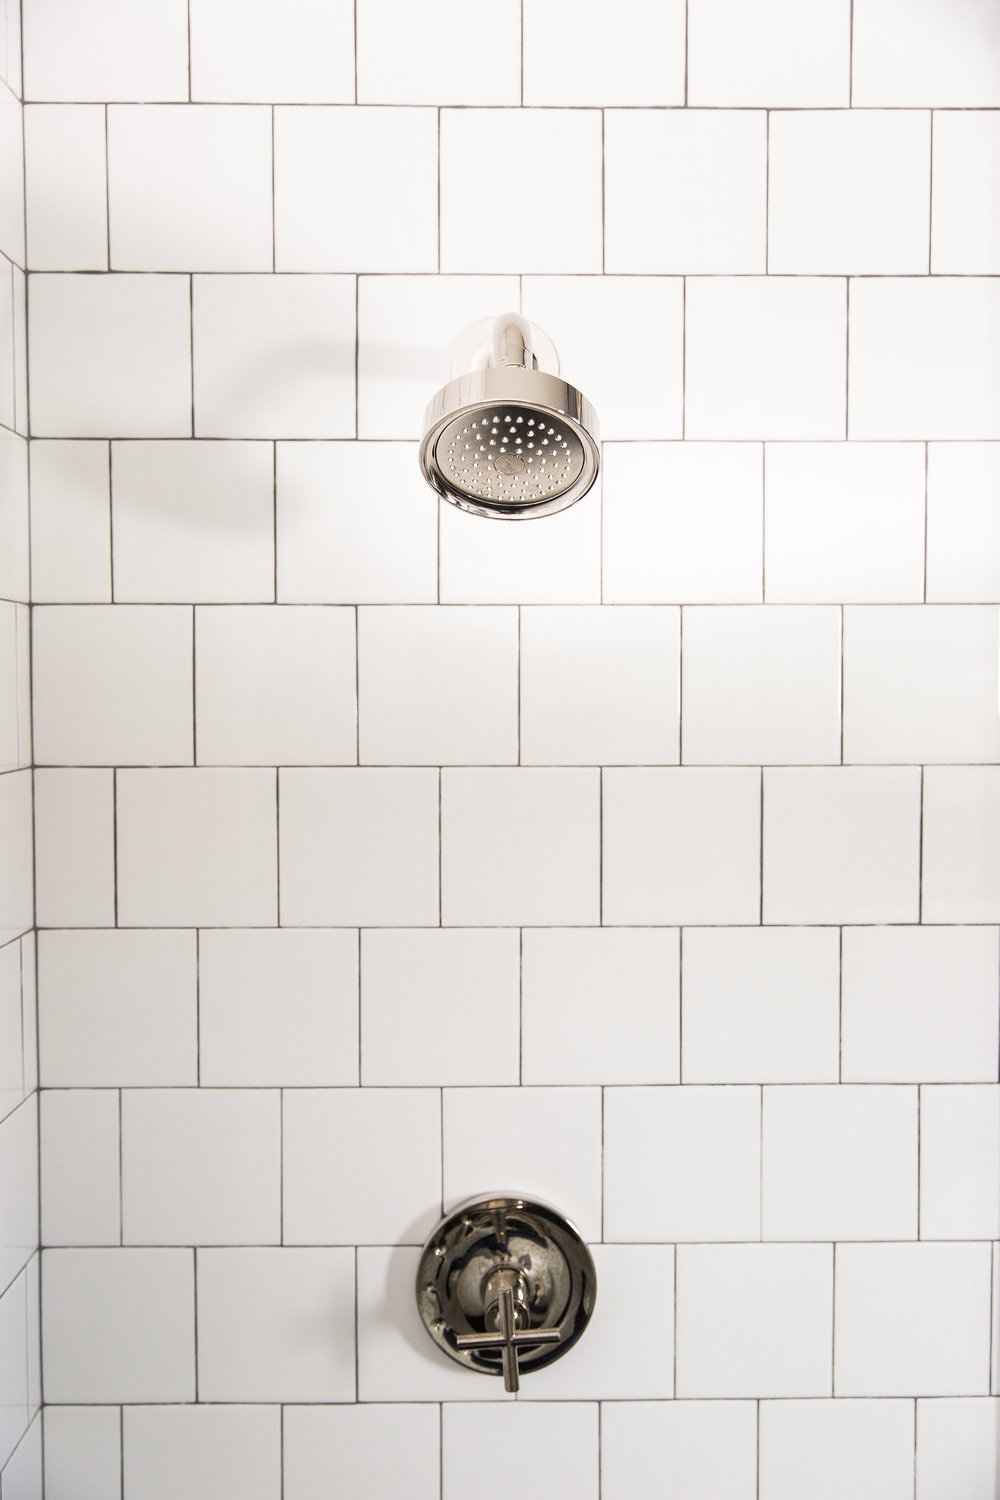 Square tile with dark grout || Studio McGee